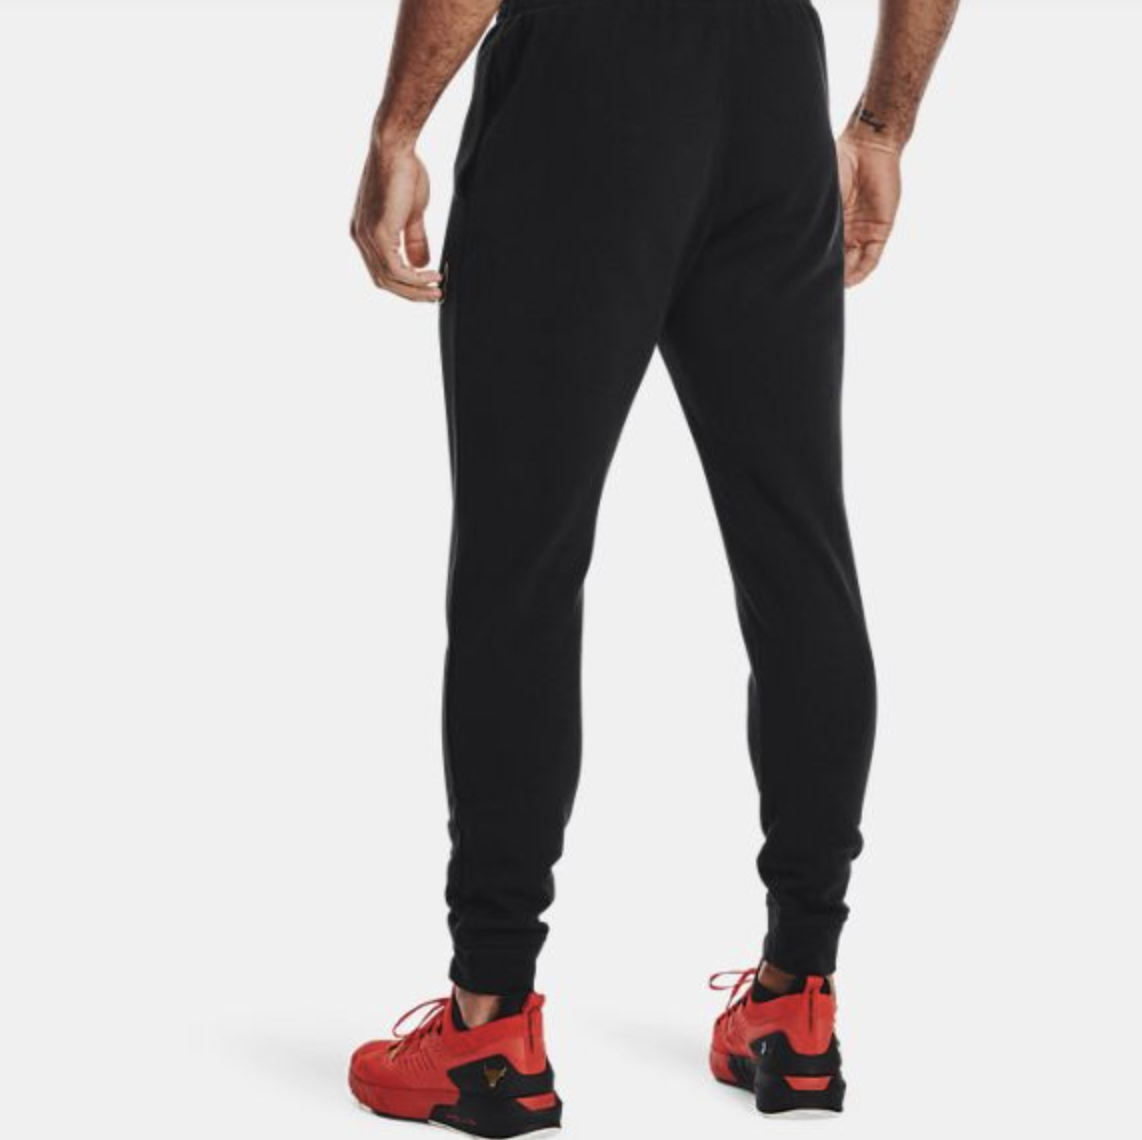 Under Armour - Quần dài nam App Rock Cny Terry Jogger Training FW20-1360